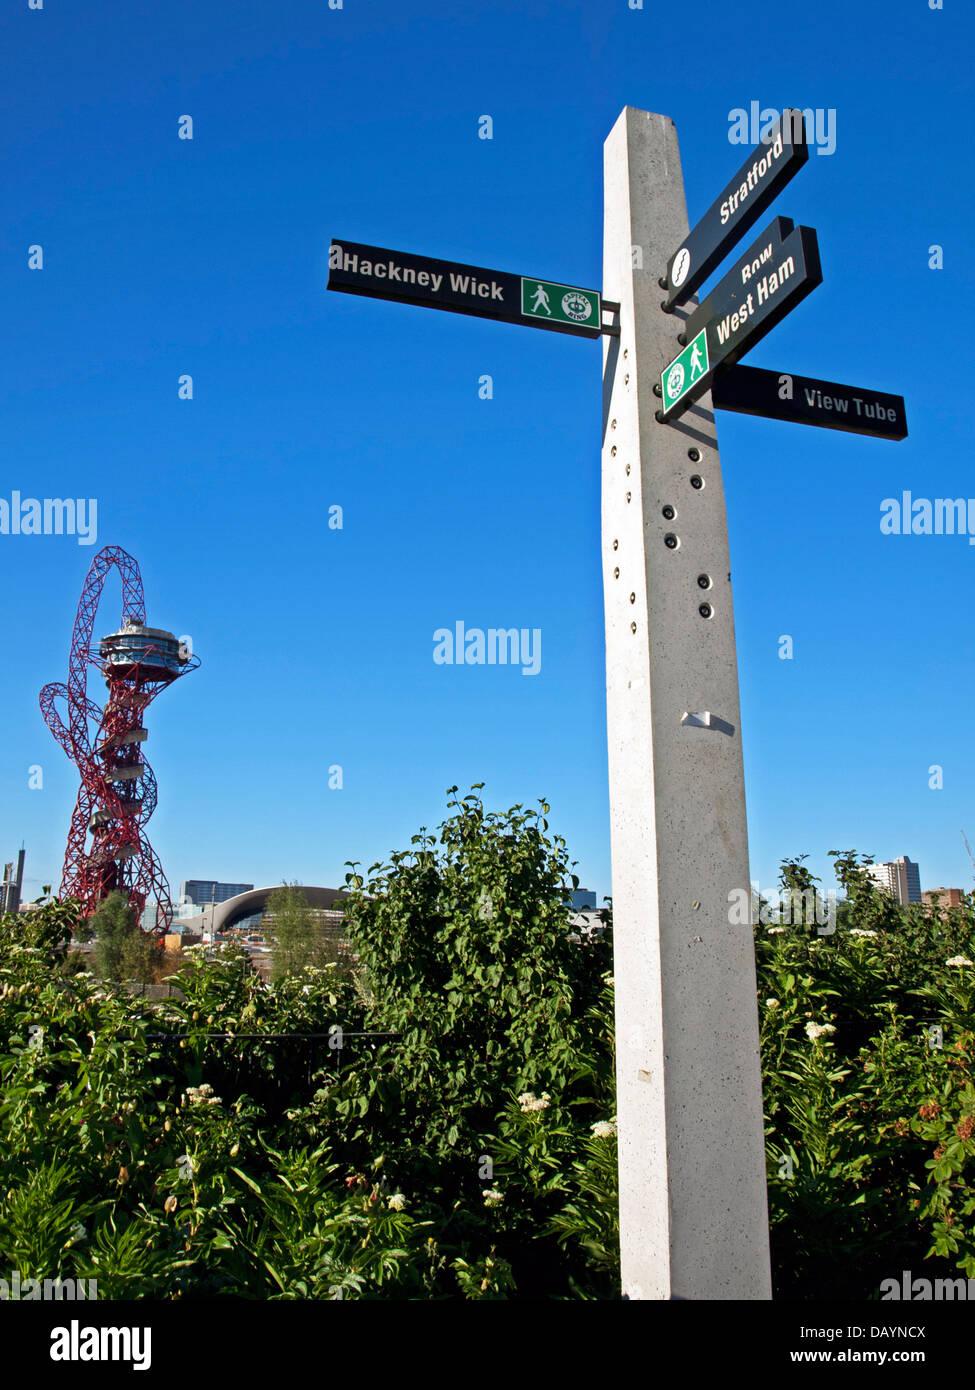 View of the arcelormittal orbit in the olympic park stratford view of the arcelormittal orbit in the olympic park stratford east london england united kingdom buycottarizona